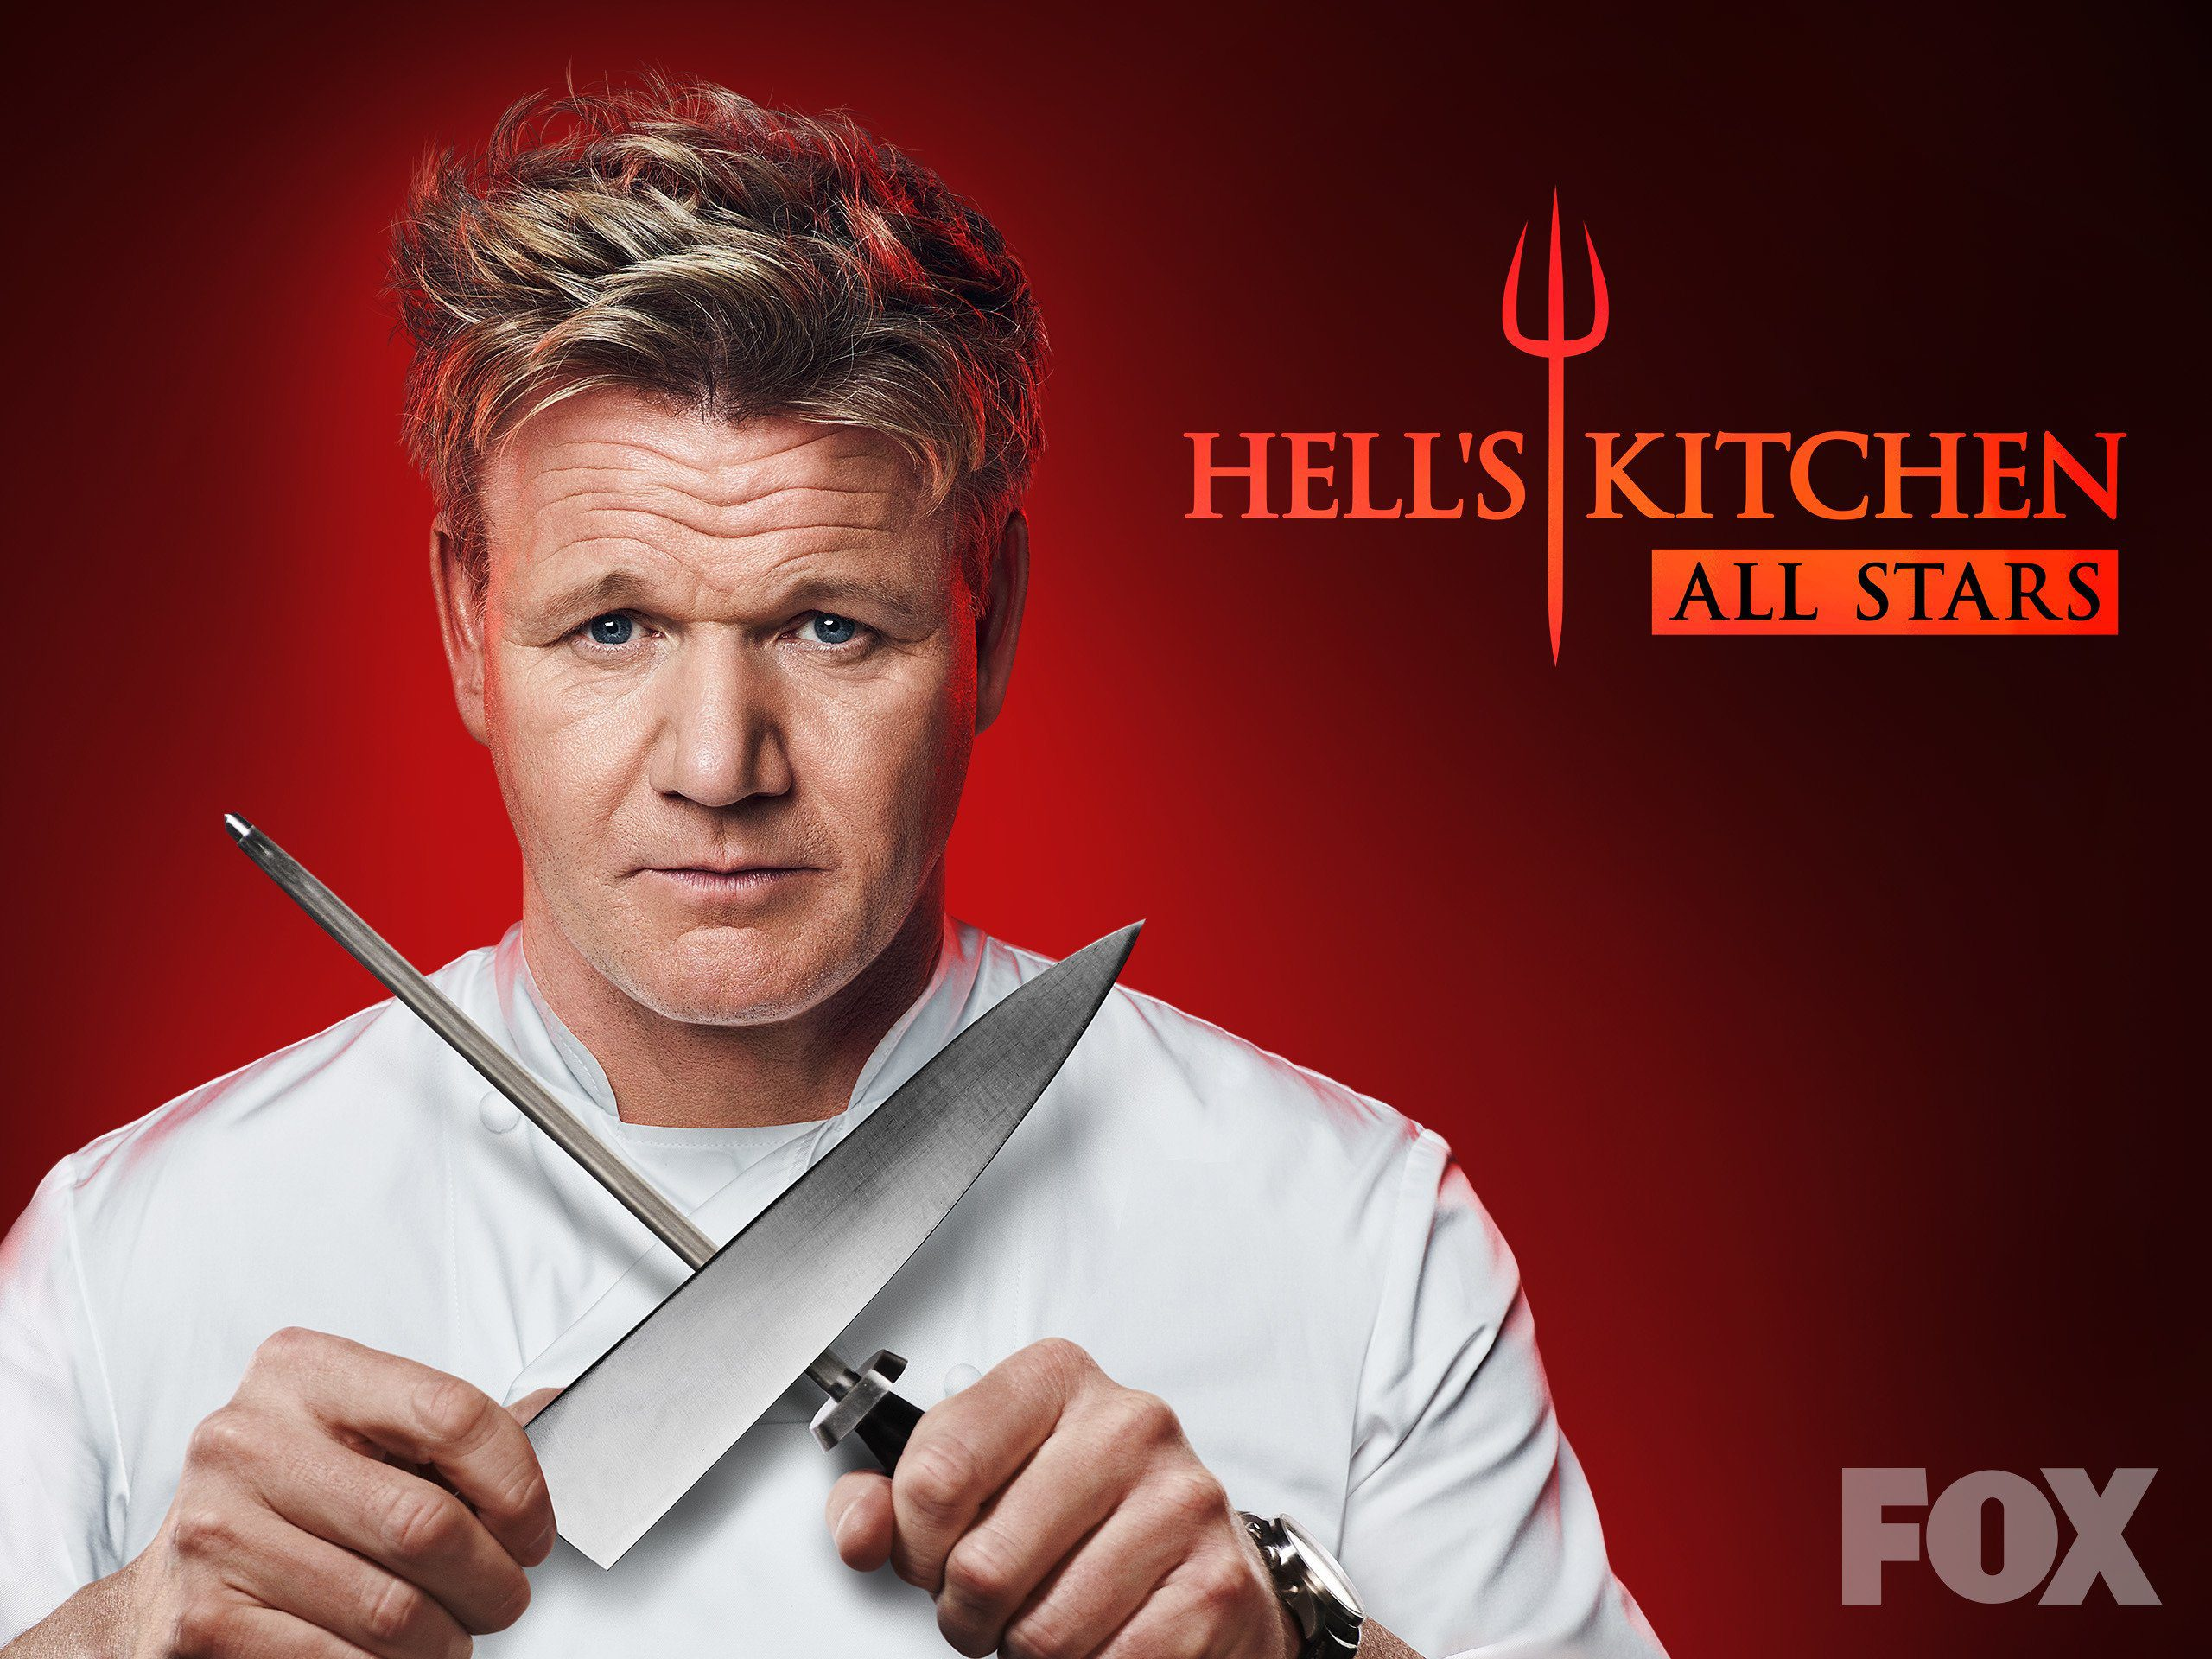 Where is Hell's Kitchen filmed